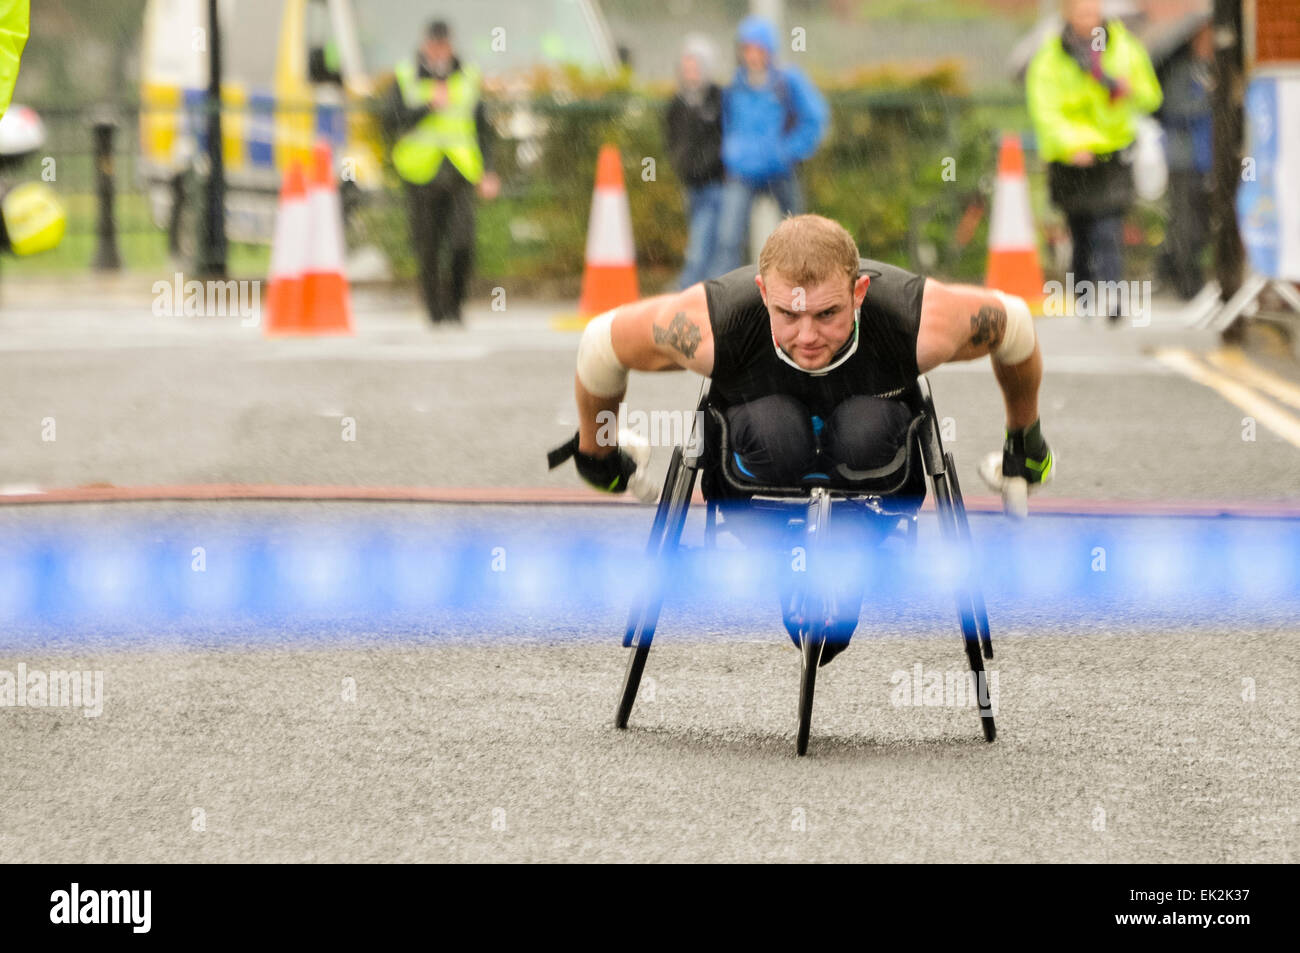 Belfast, Northern Ireland. 5 May 2014 - Patrick Monaghan from Athlone about to take first place in the wheelchair - Stock Image